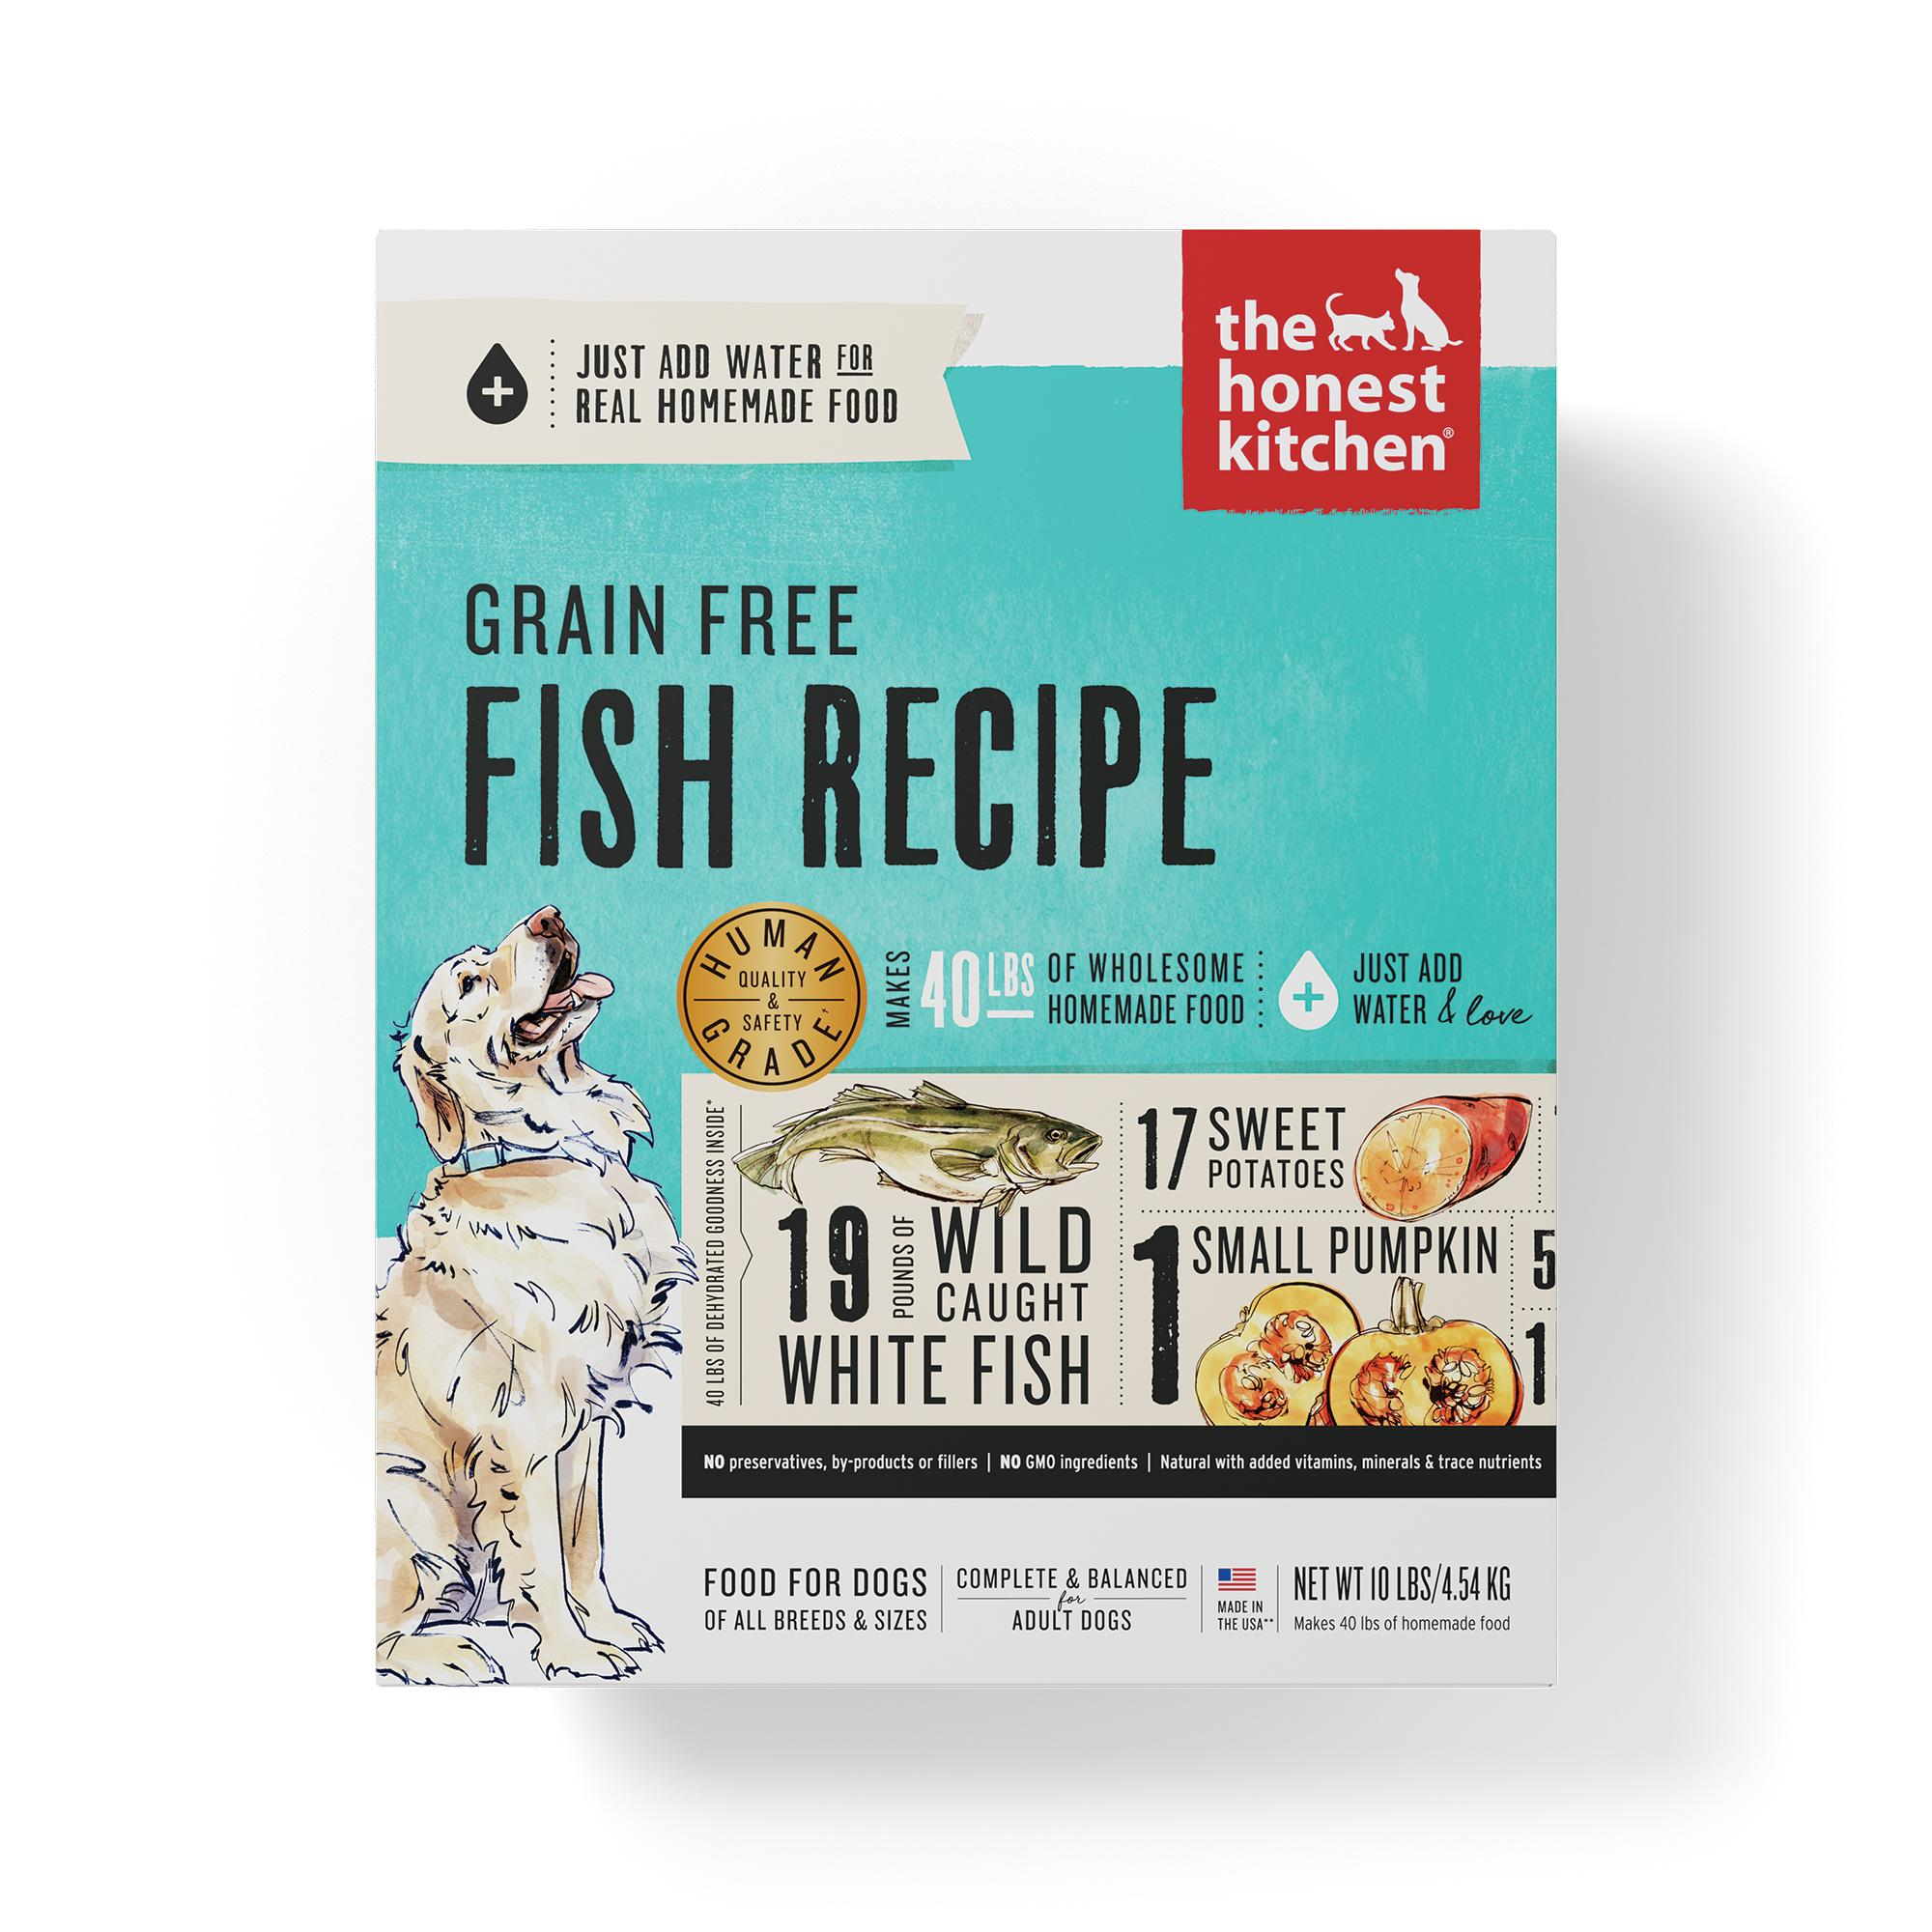 The Honest Kitchen Fish Recipe Grain-Free Dehydrated Dog Food, 10-lb box